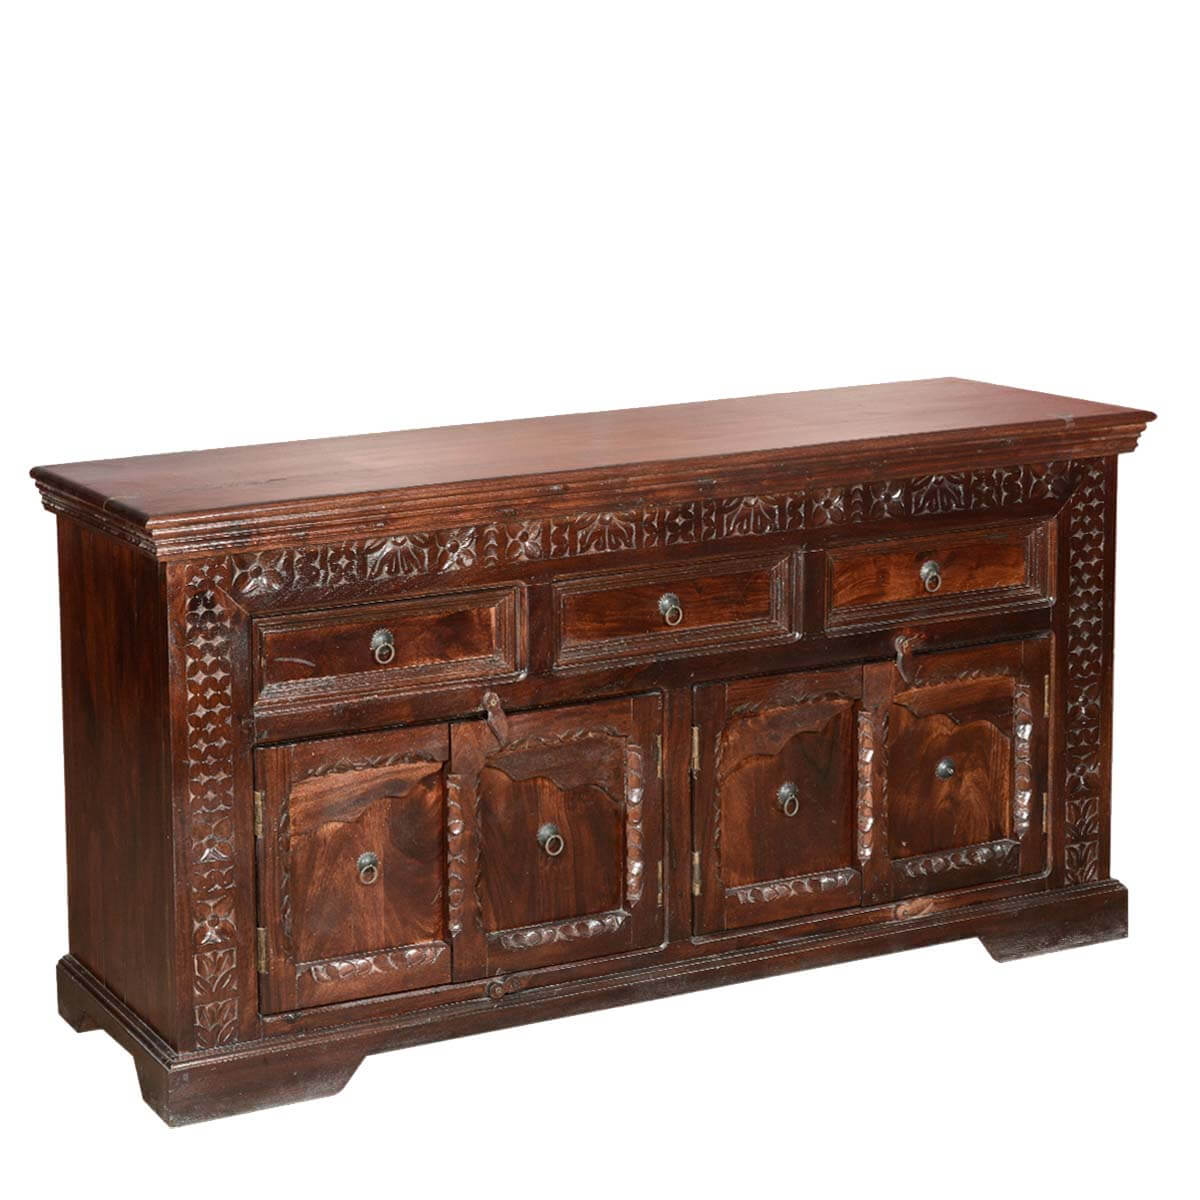 Side Board Empire Rustic Solid Wood 4 Door 3 Drawer Sideboard